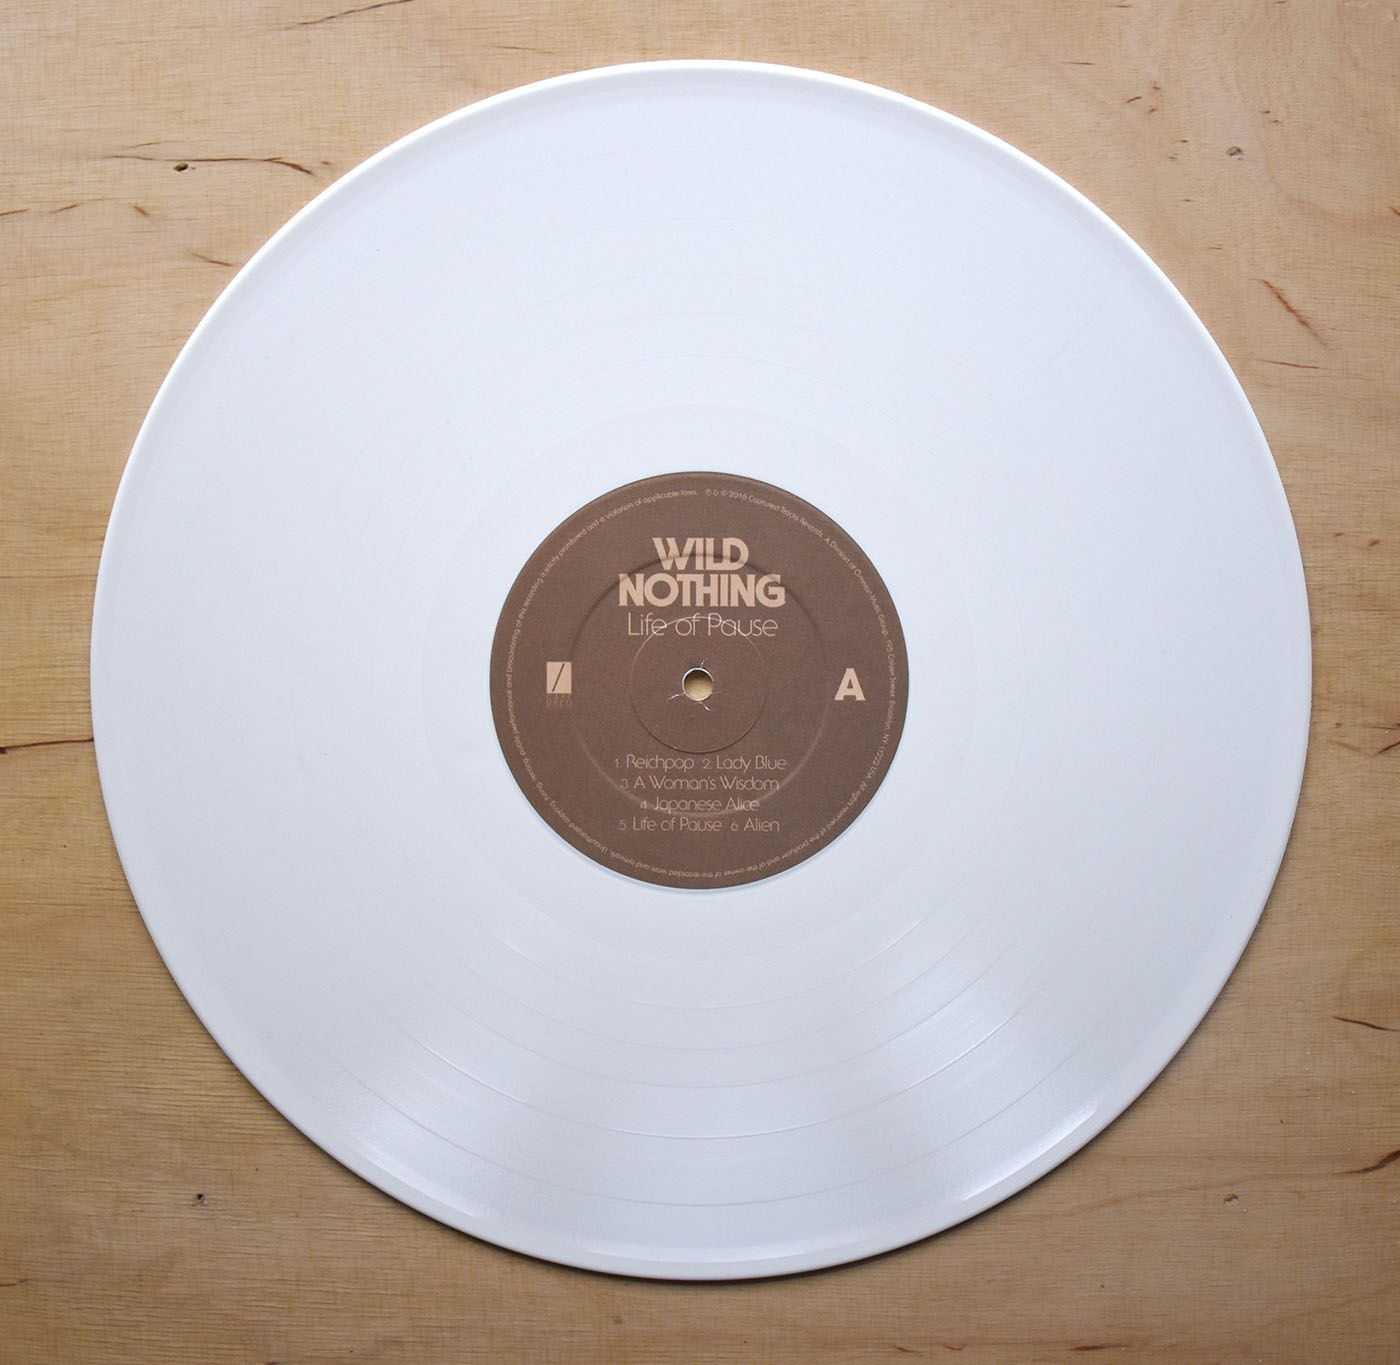 Wild Nothing Life Of Pause Deluxe White Vinyl Lp 12 Inch Wild Nothing White Vinyl Vinyl